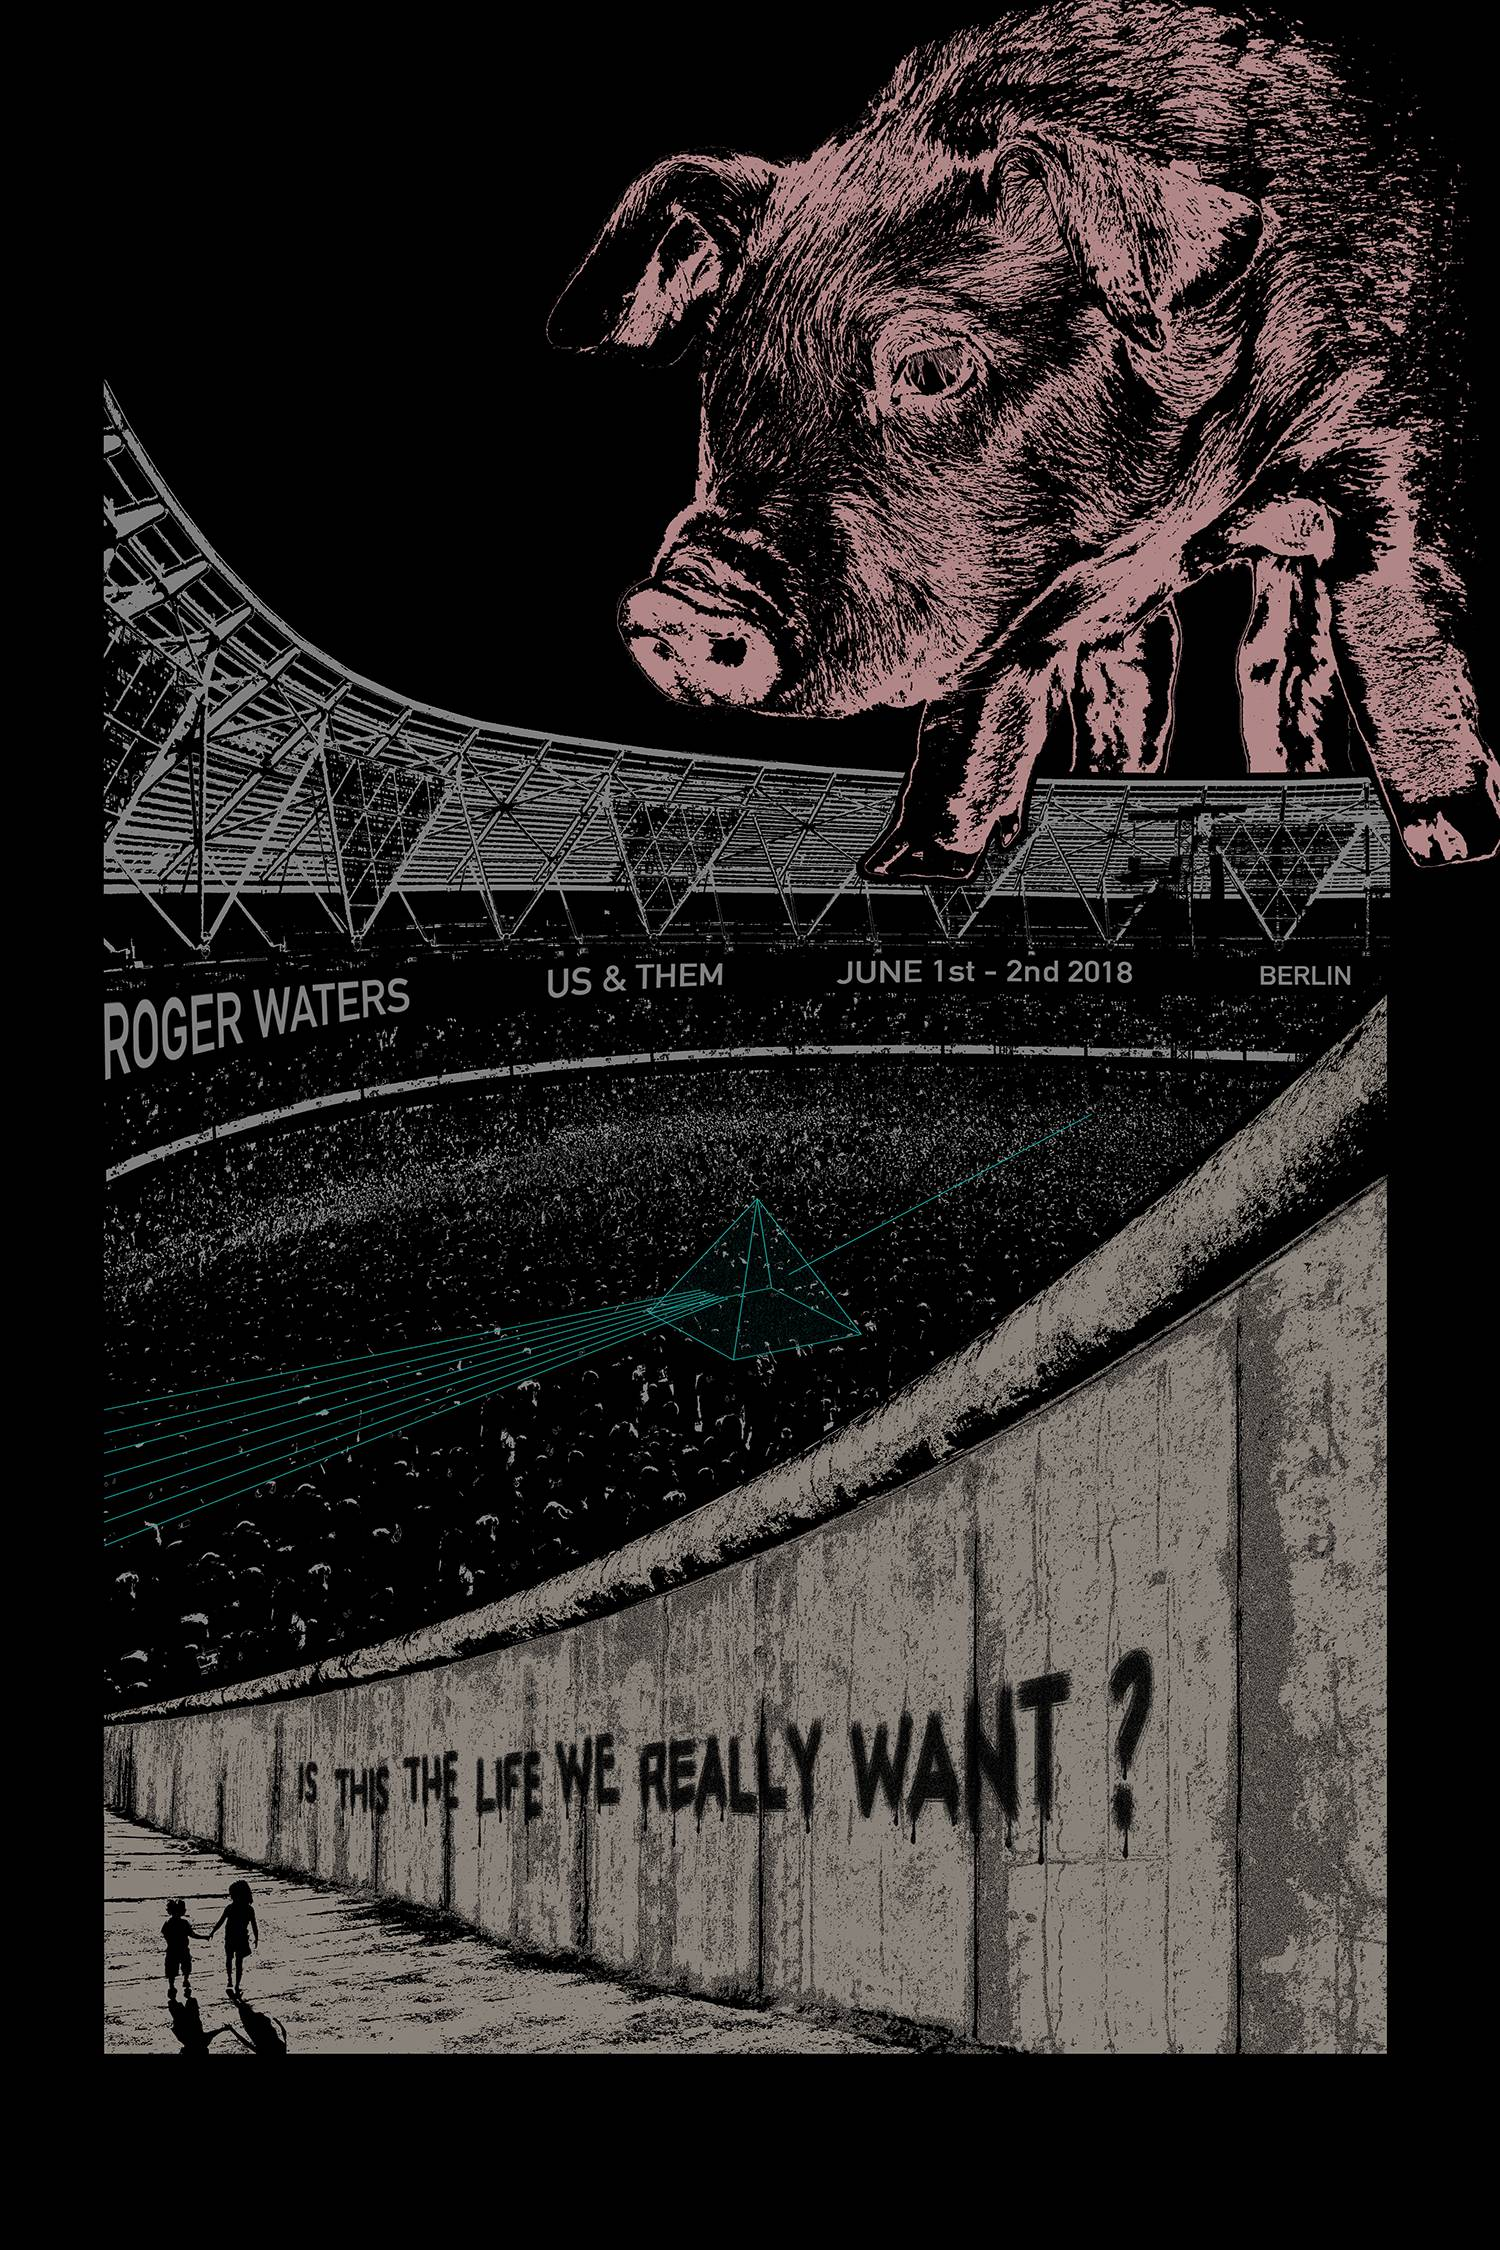 roger waters music poster by chaim machlev